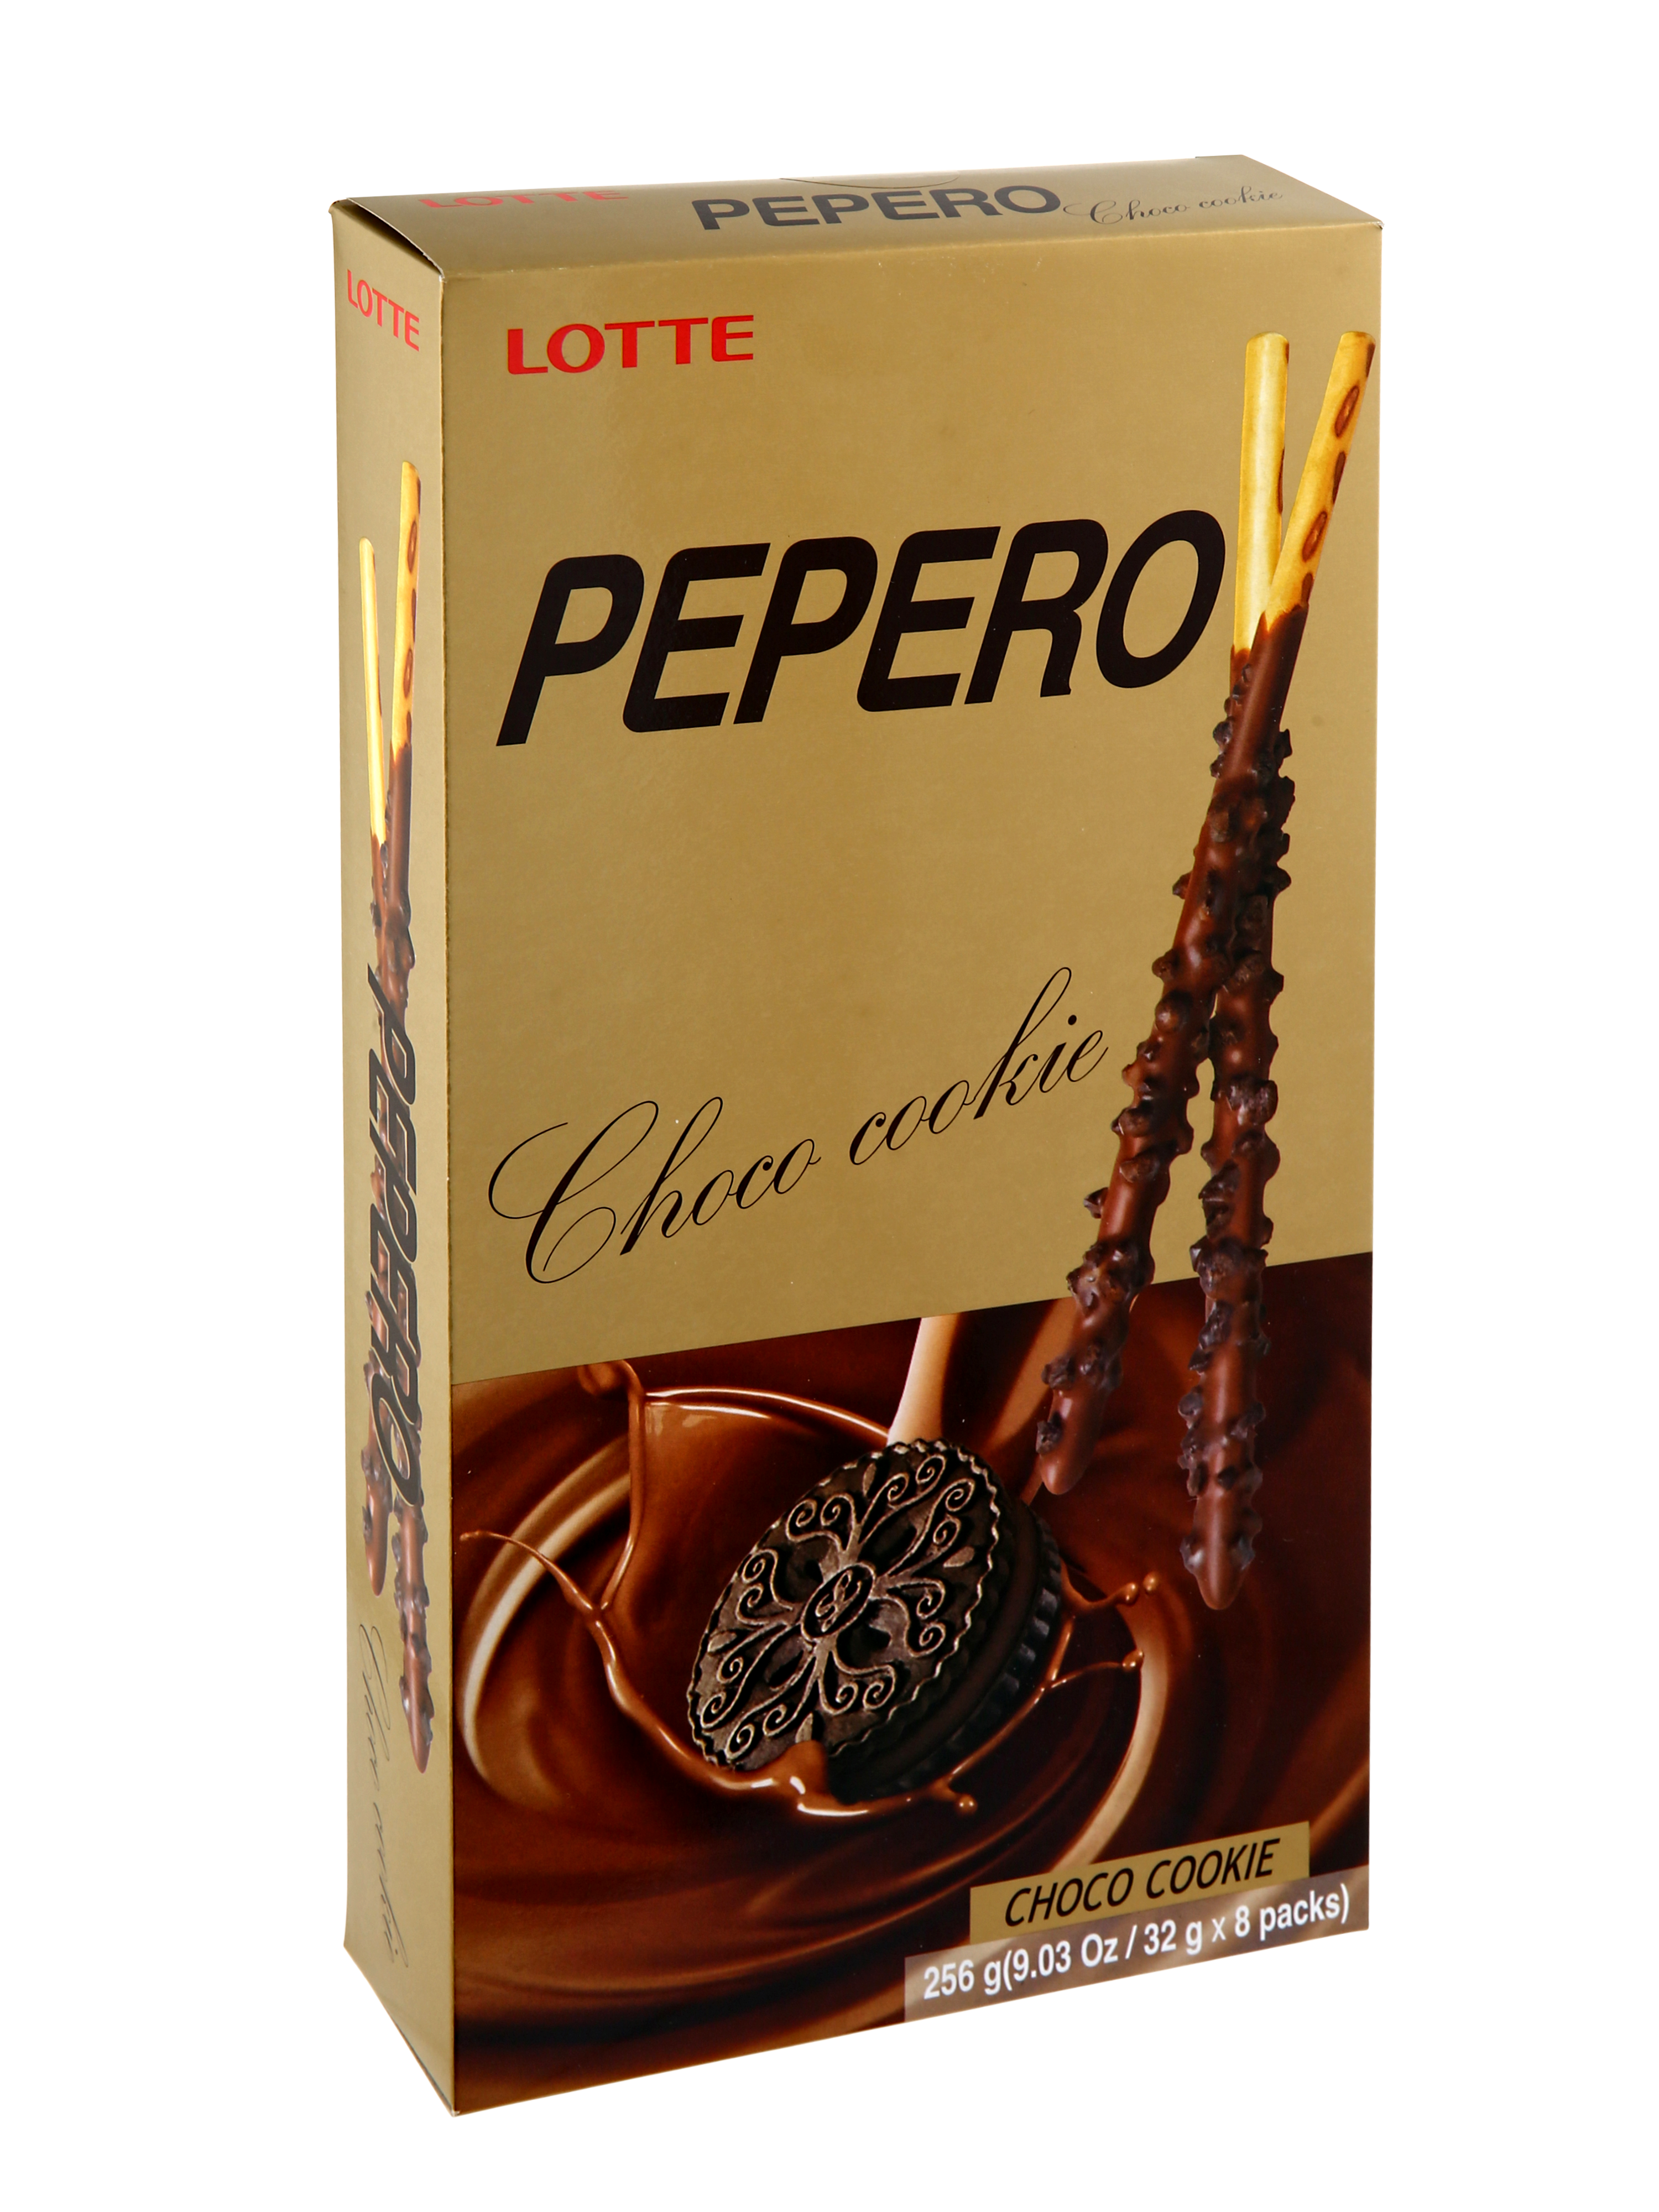 Lotte Pepero Chocolate Cookie 256gm (32g X 8pack)